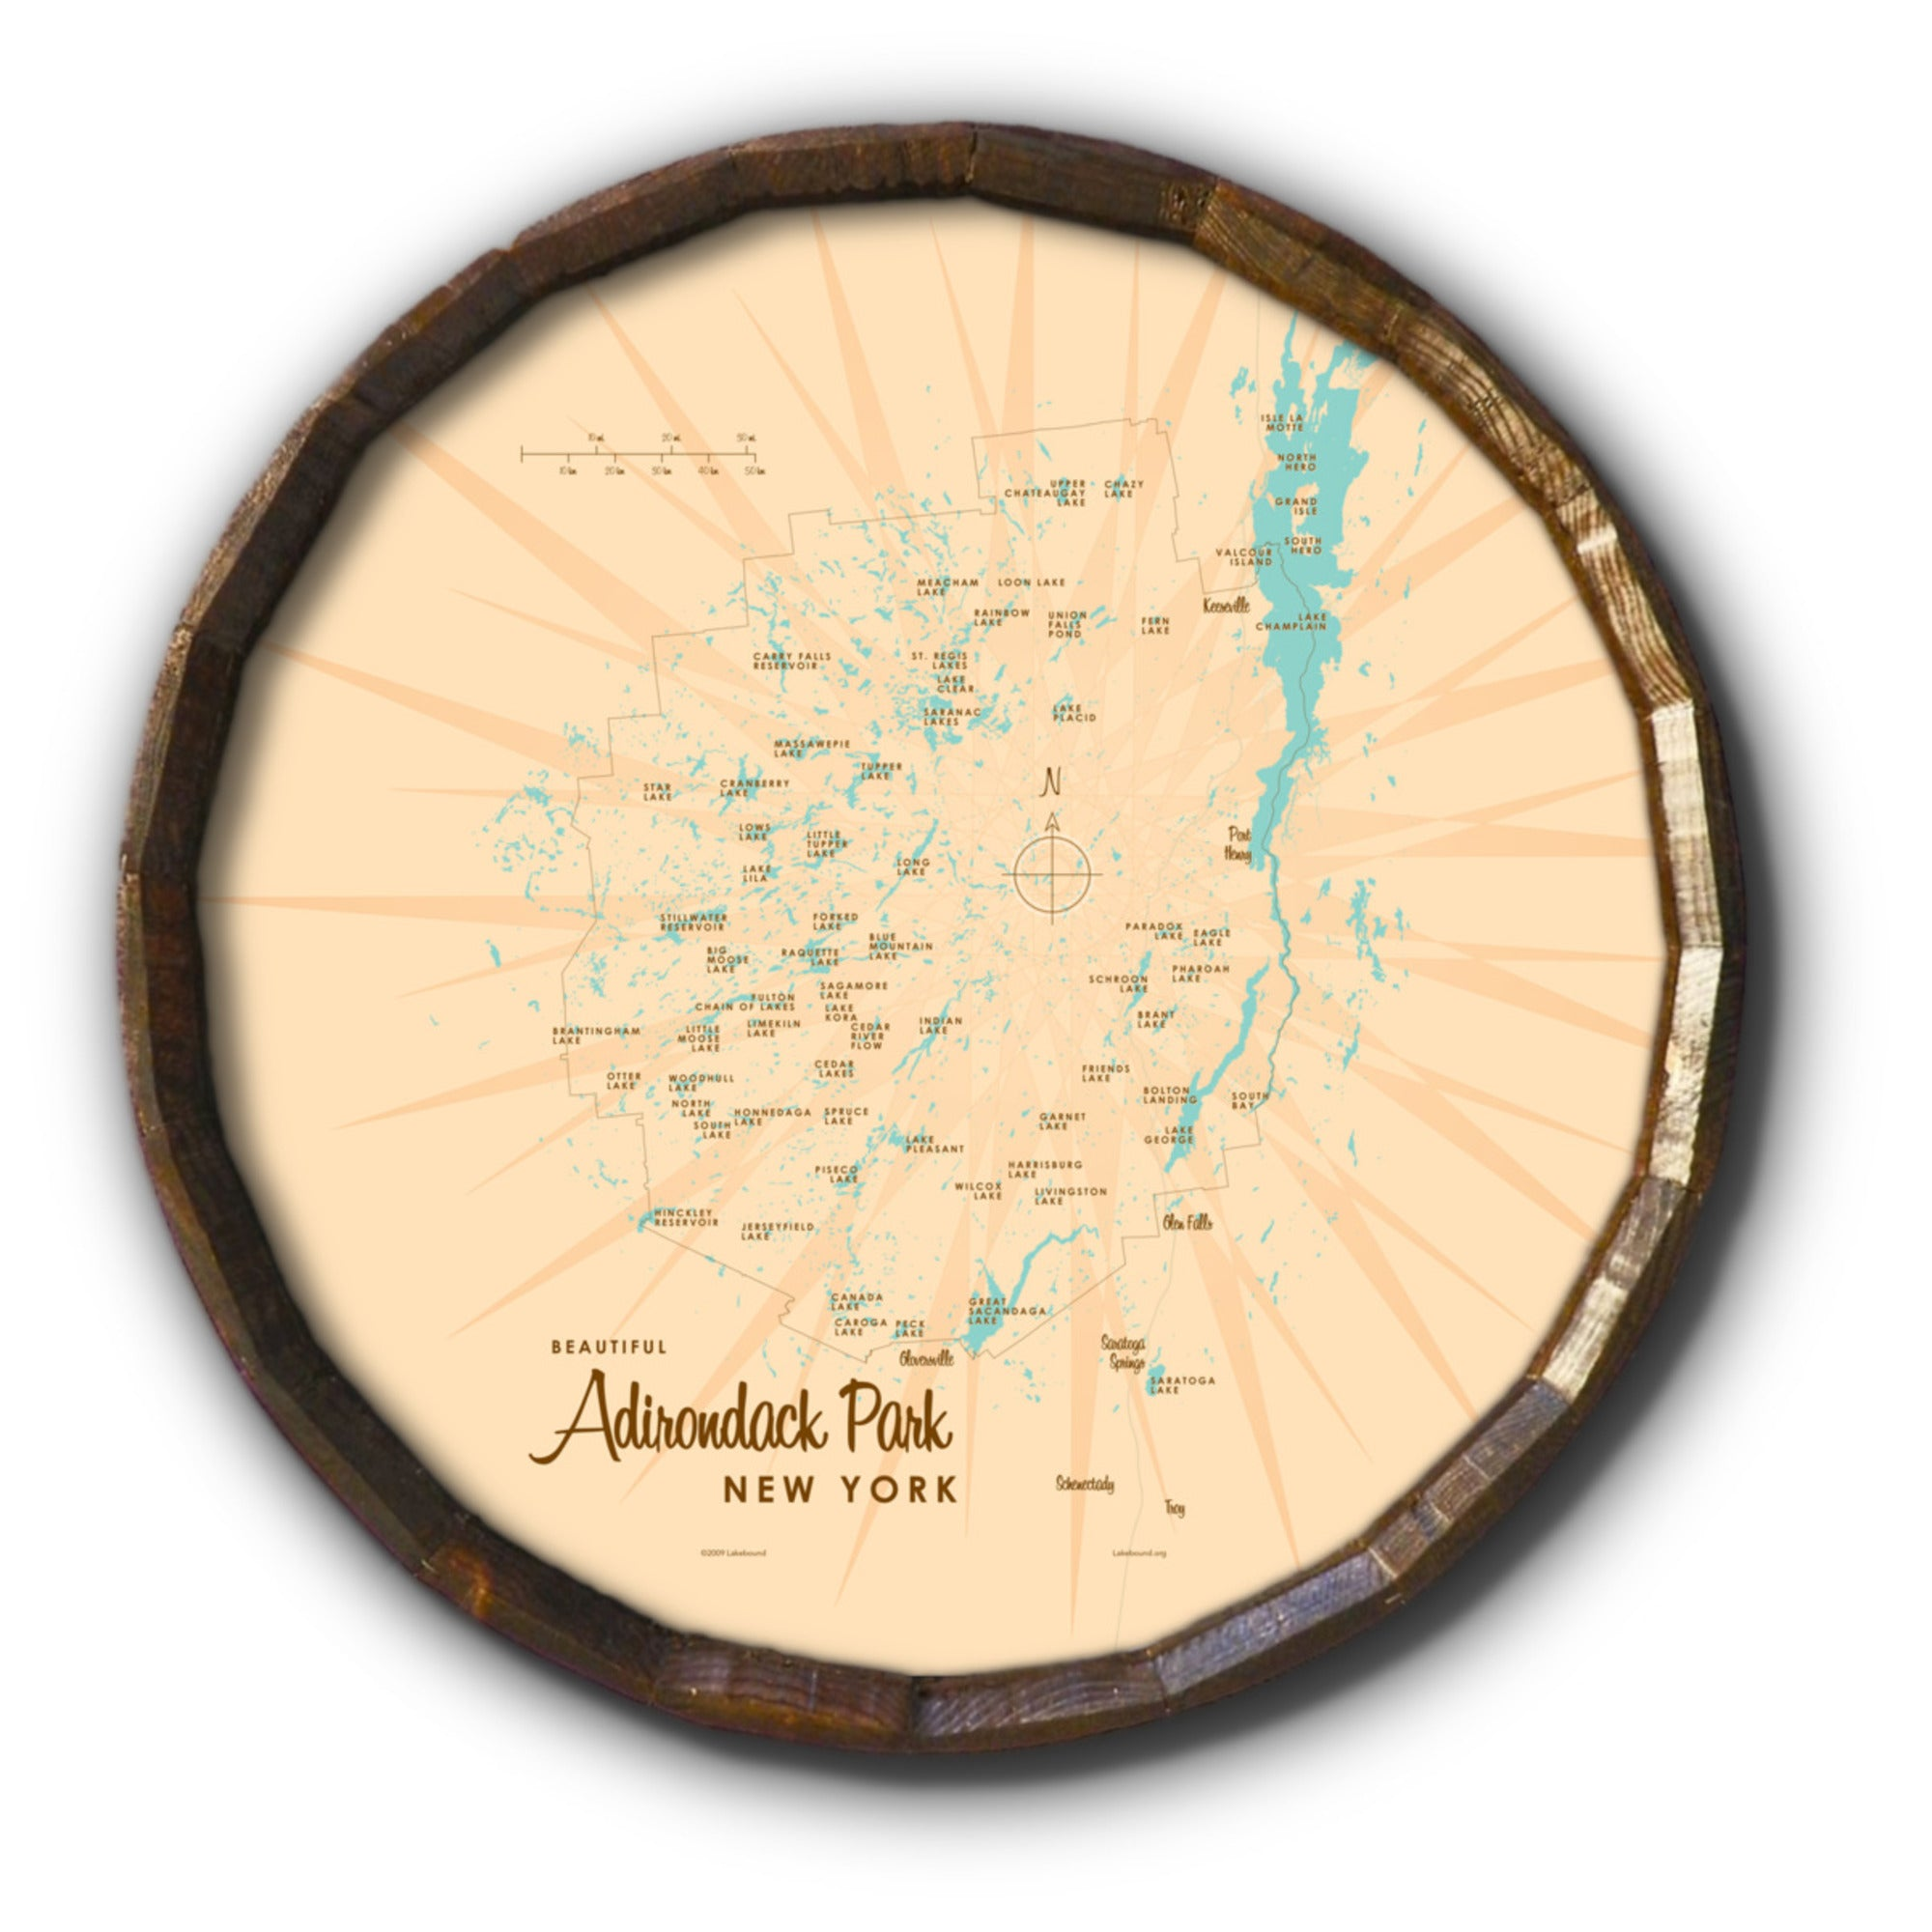 Adirondack Park New York, Barrel End Map Art